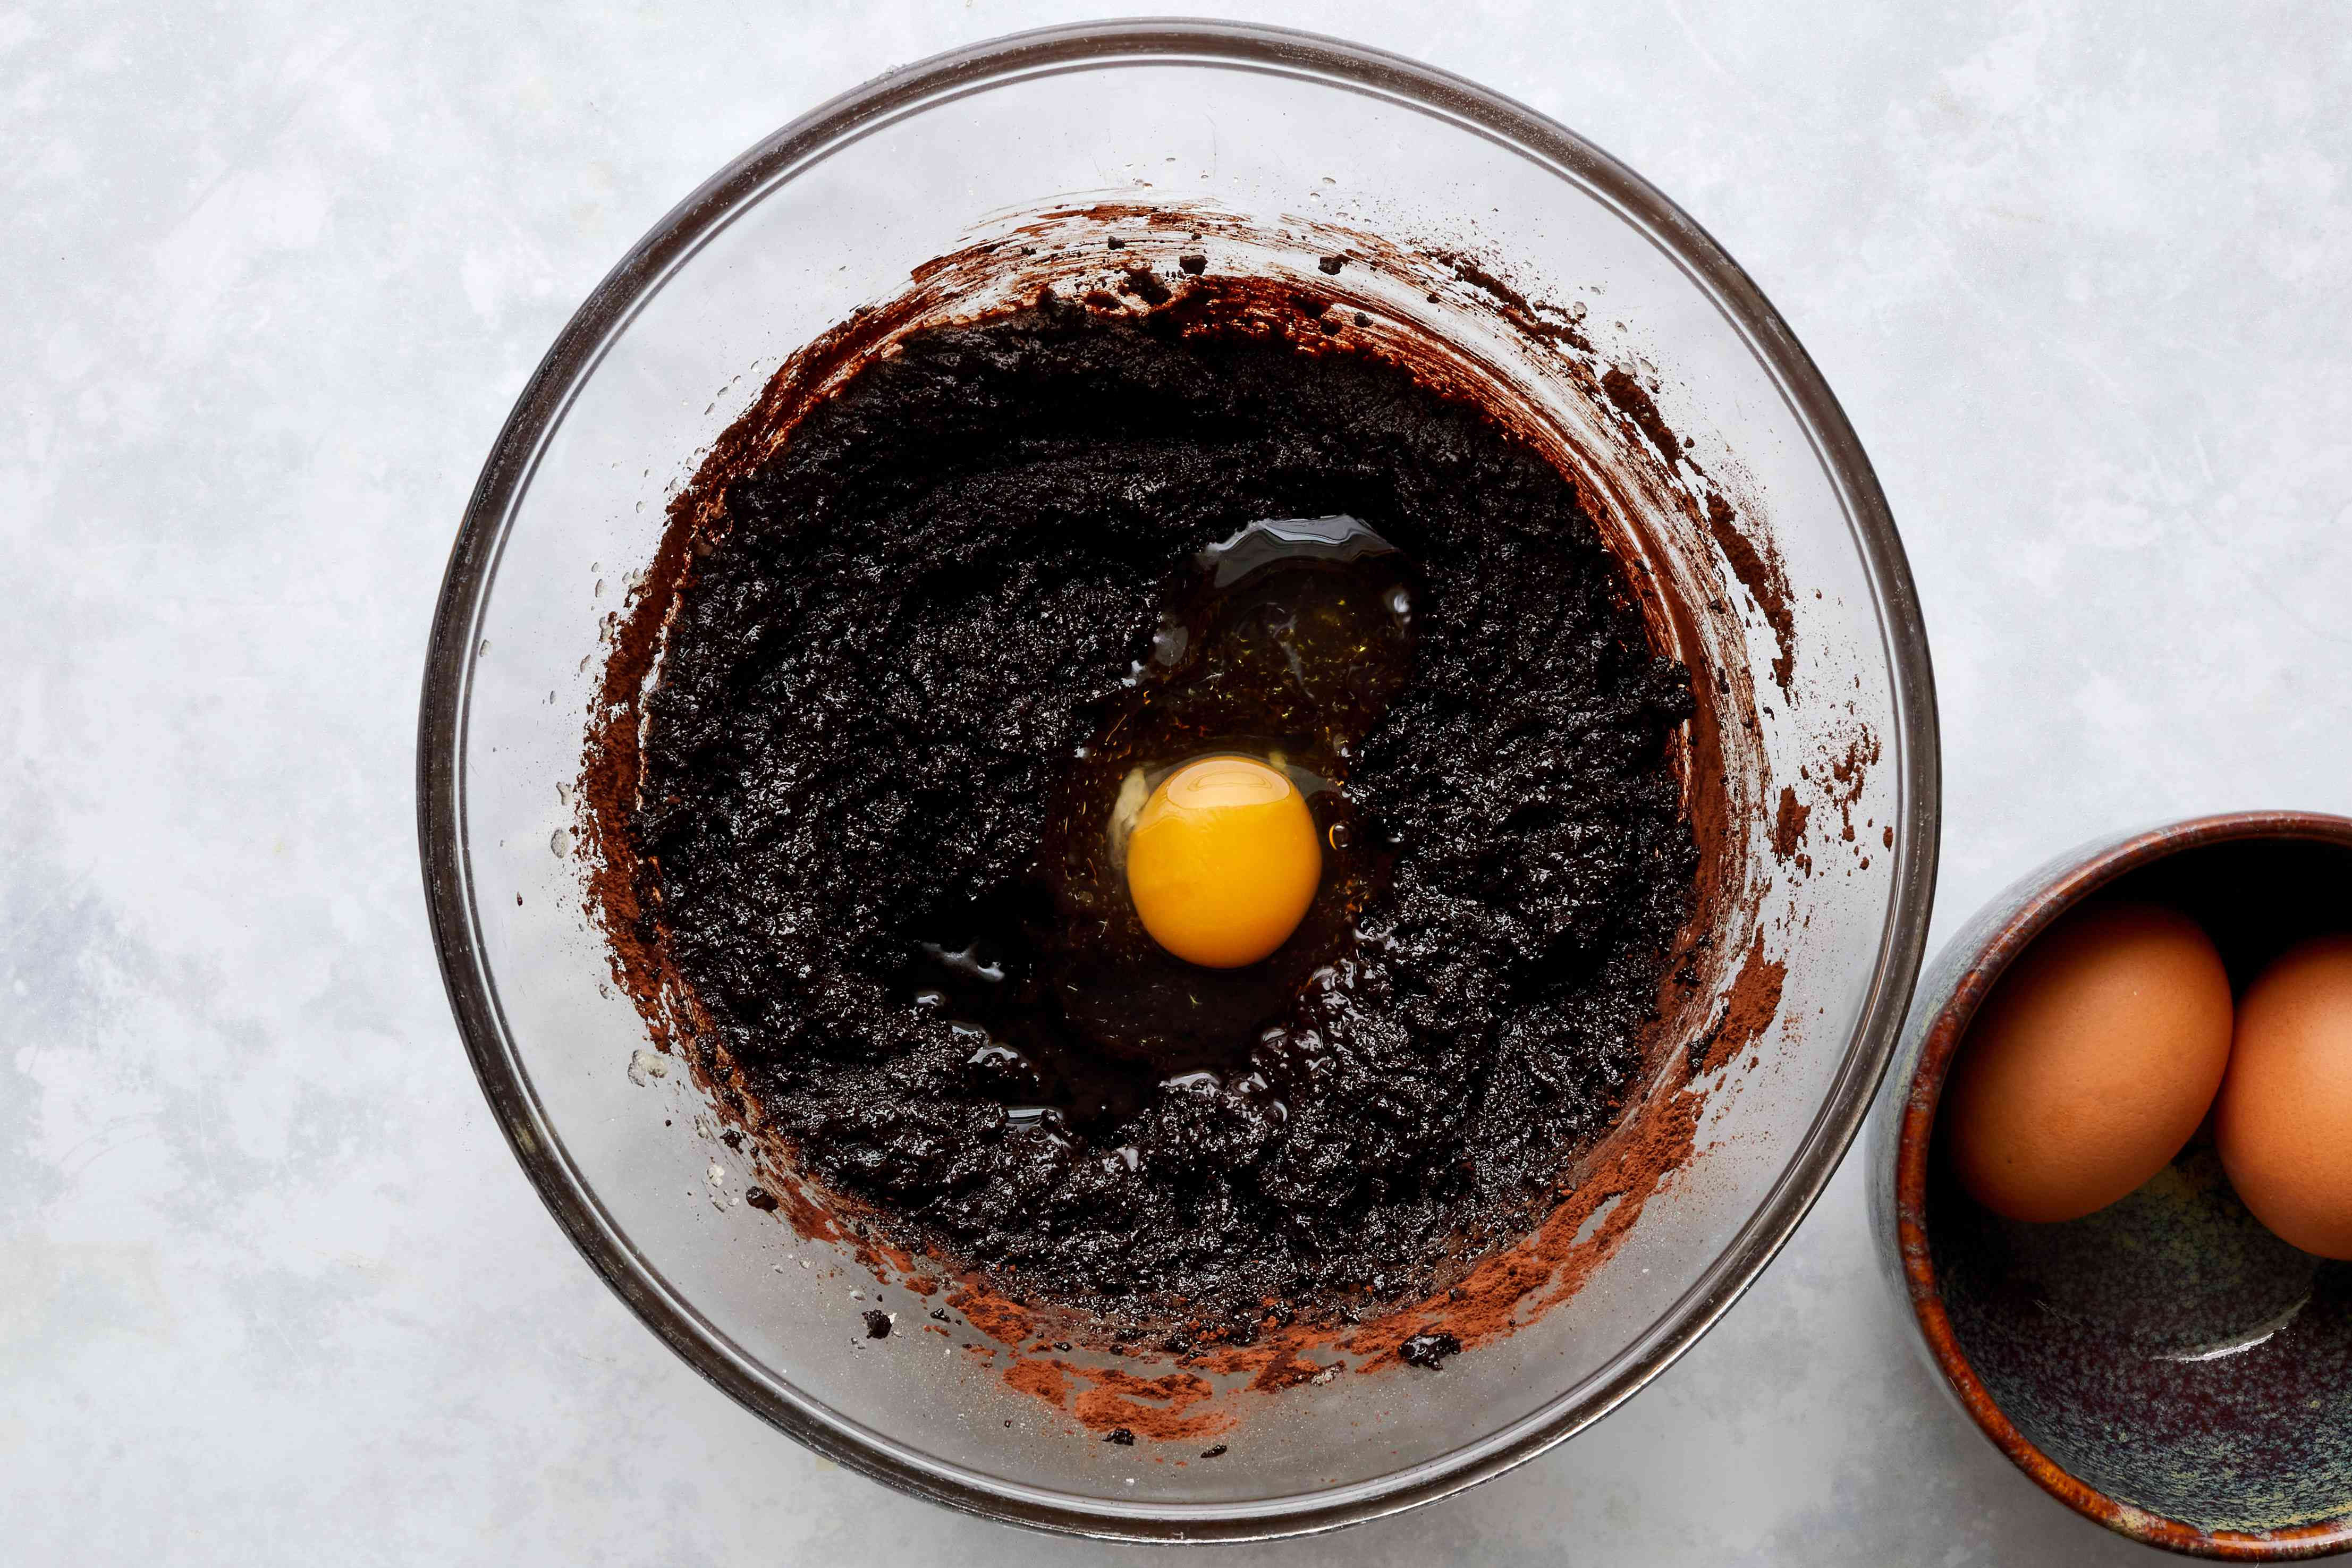 egg on top of the chocolate batter in a large glass dough